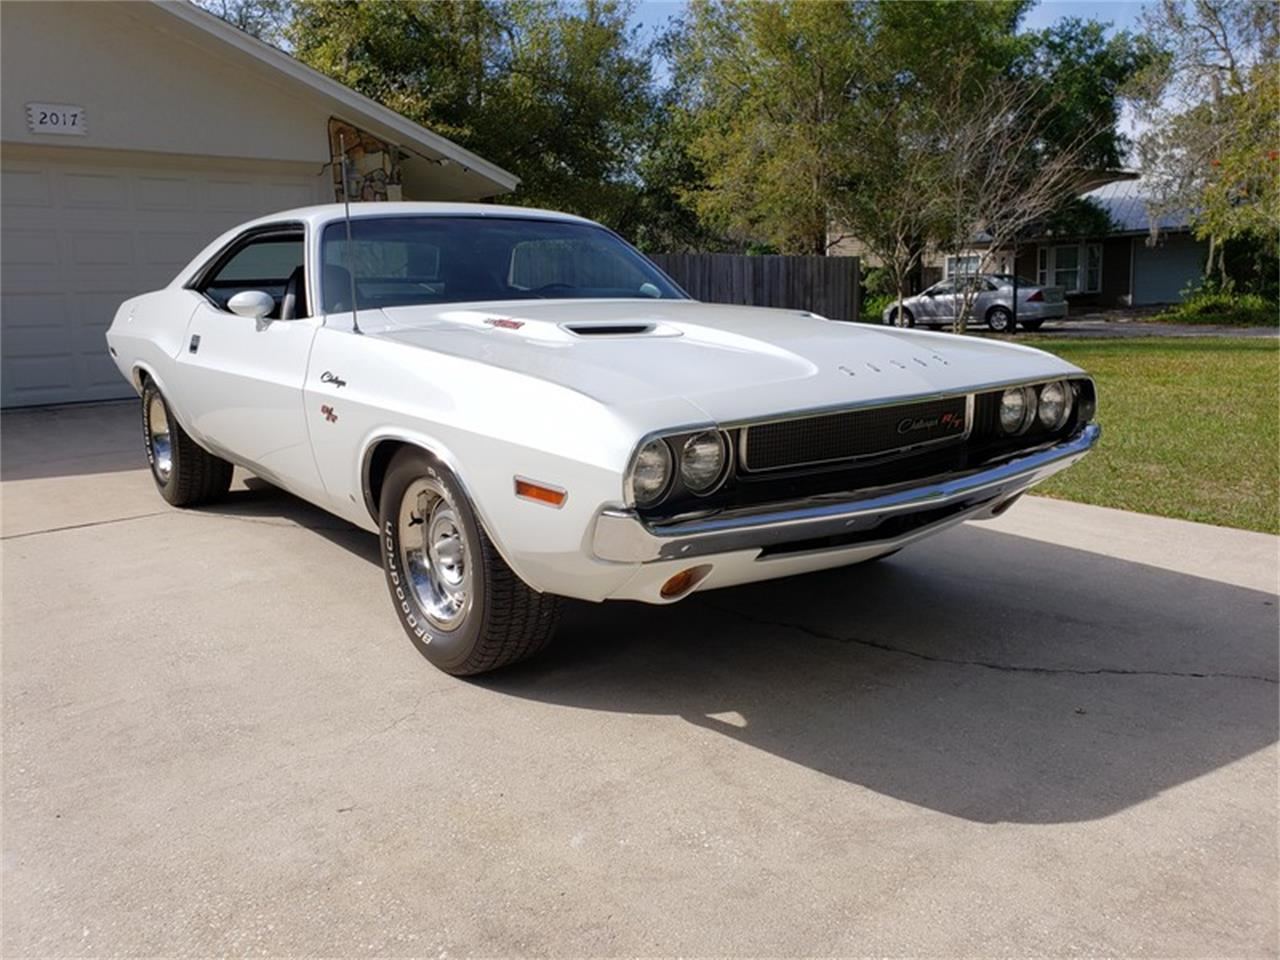 Large Picture of Classic '70 Dodge Challenger R/T located in New Port Richey Florida Offered by a Private Seller - Q72C